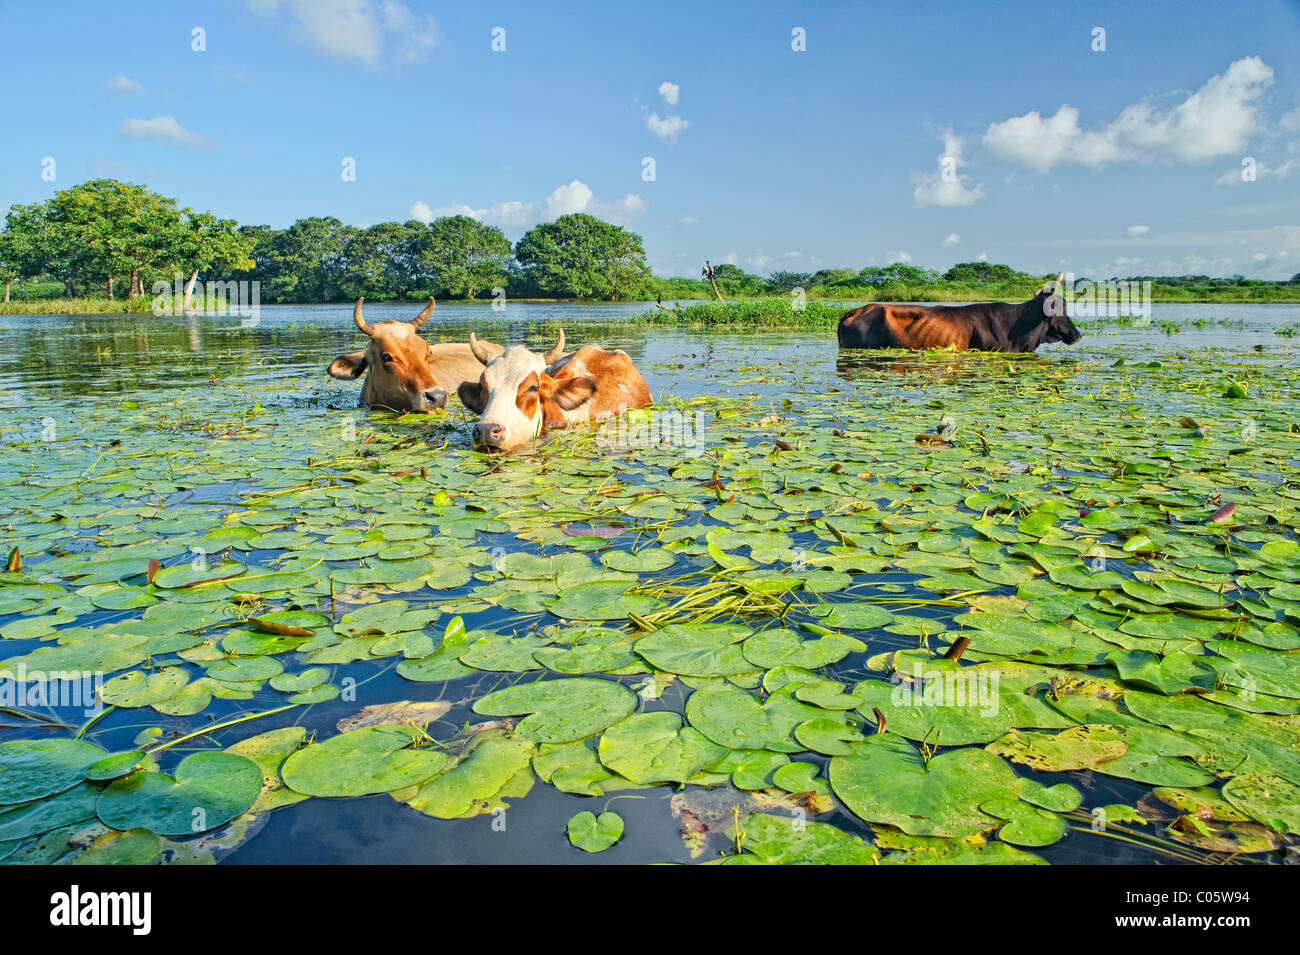 Cows feeding on warer lilies in Lago Negro in the Cano Negro area of Costa Rica. - Stock Image